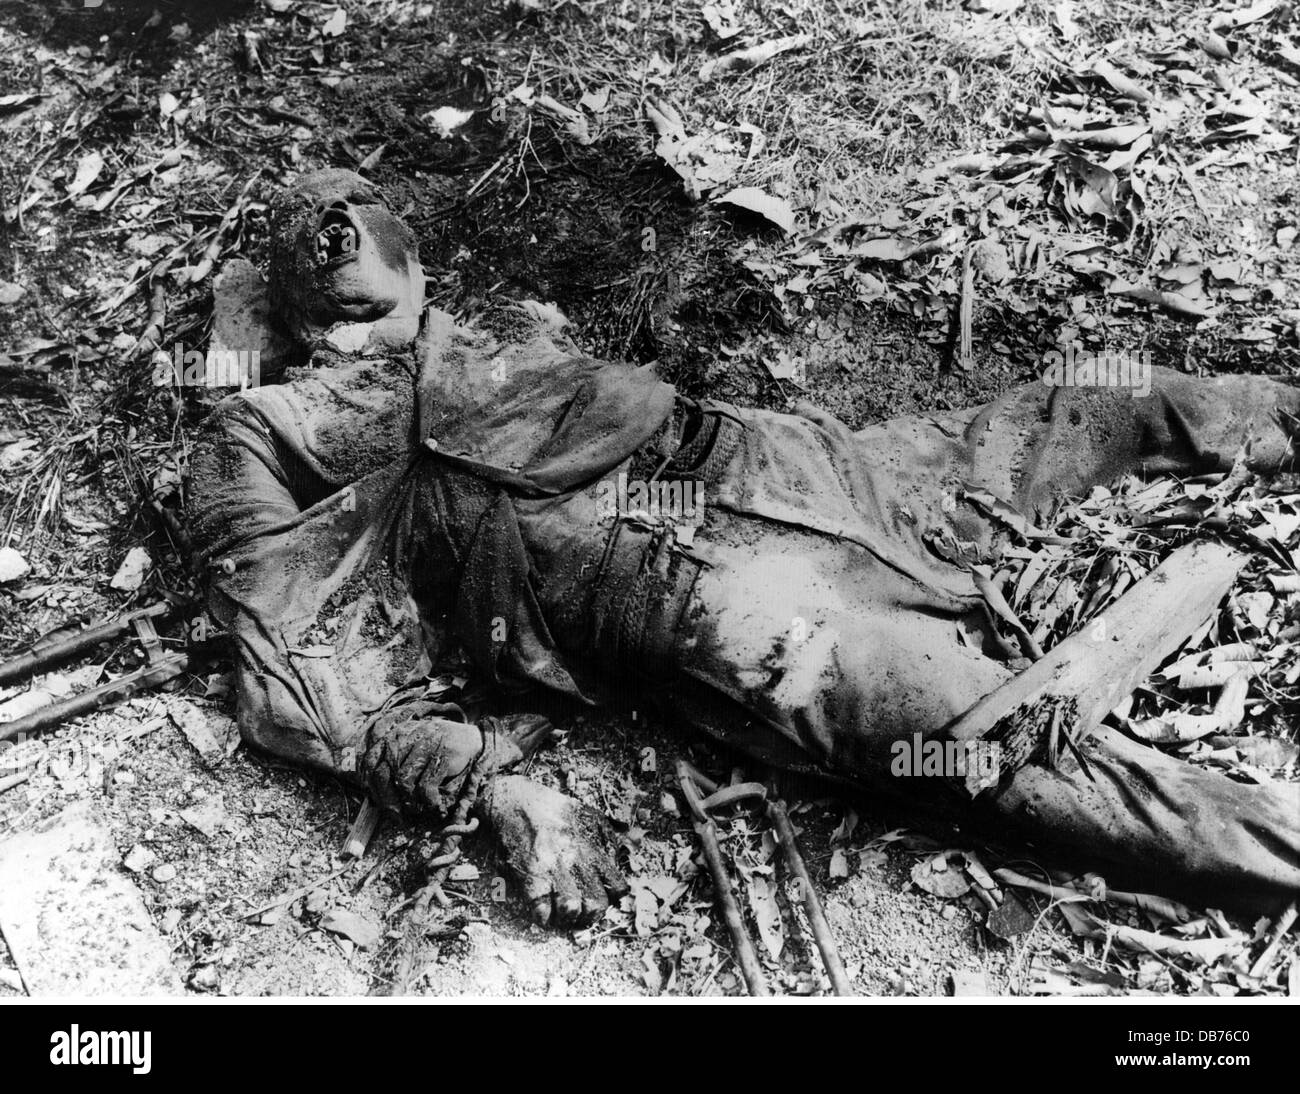 Second World War / WWII, Southeast Asia, Philippines, rotting corpse of a civilian tied and shot by the Japaneses, - Stock Image